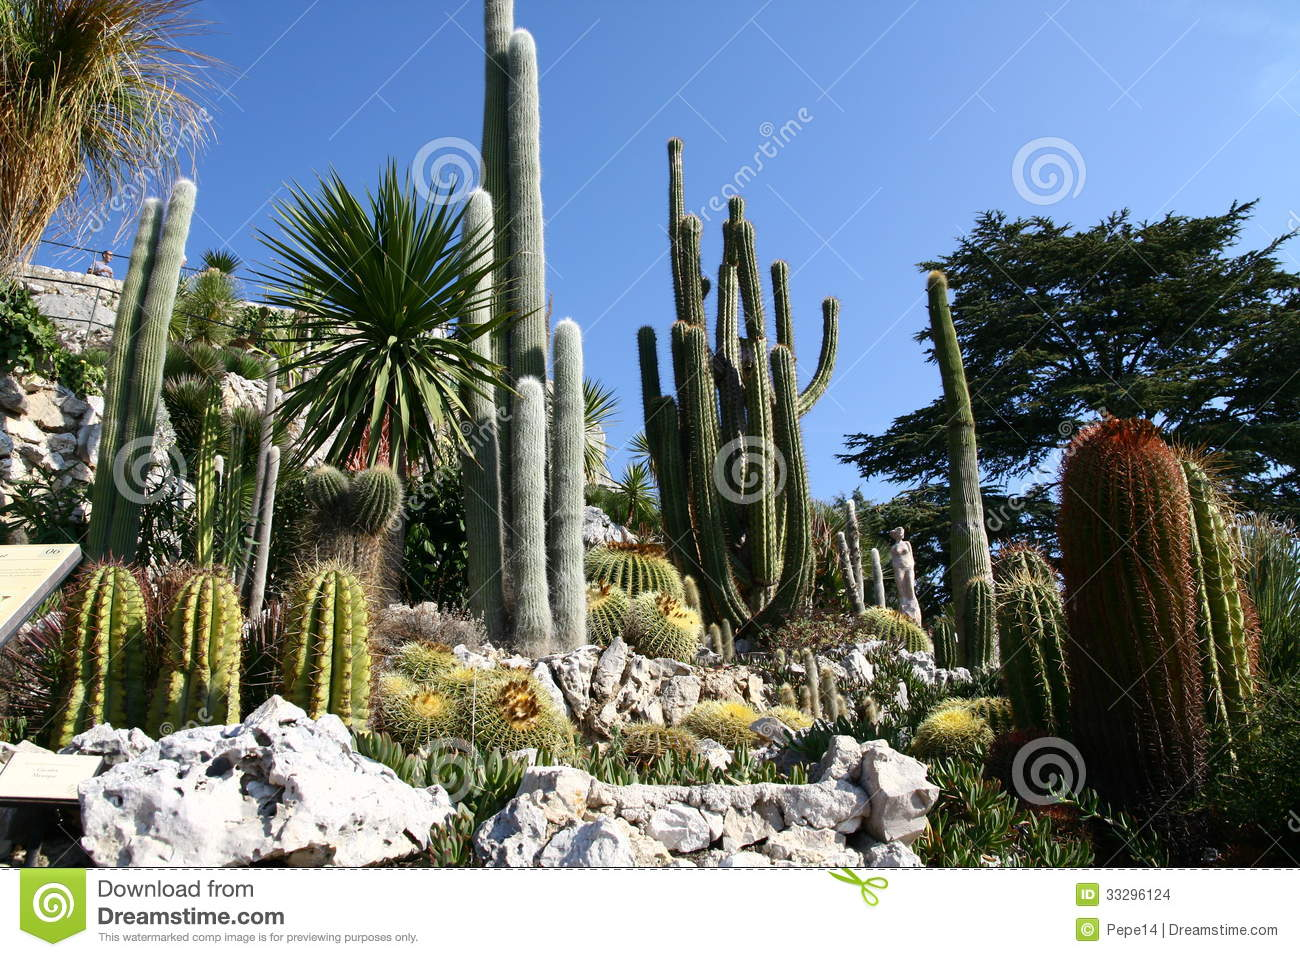 Cactus garden in eze village stock images image 33296124 for Eze jardin exotique statues